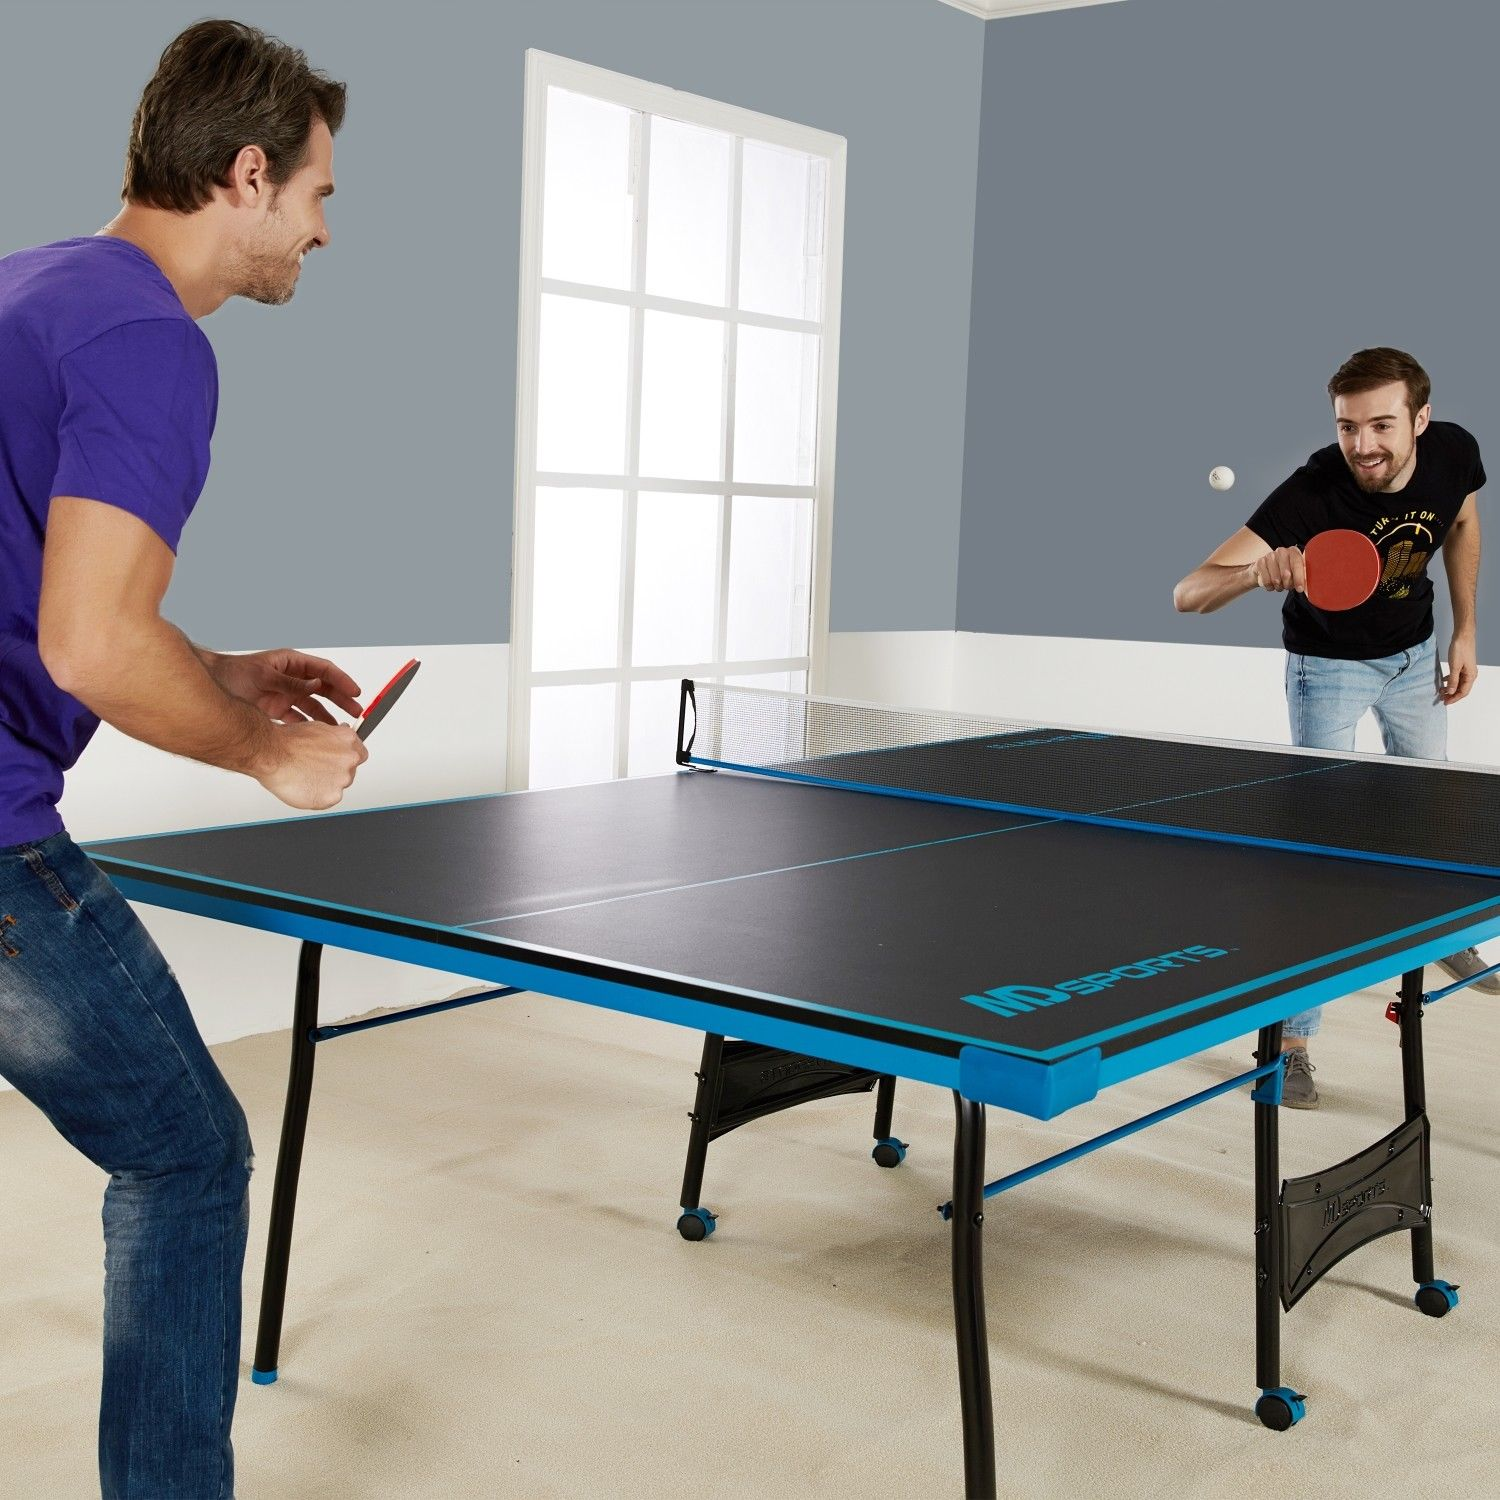 Ping Pong Table Tennis Black Blue Official Size Sports Indoor Game ...